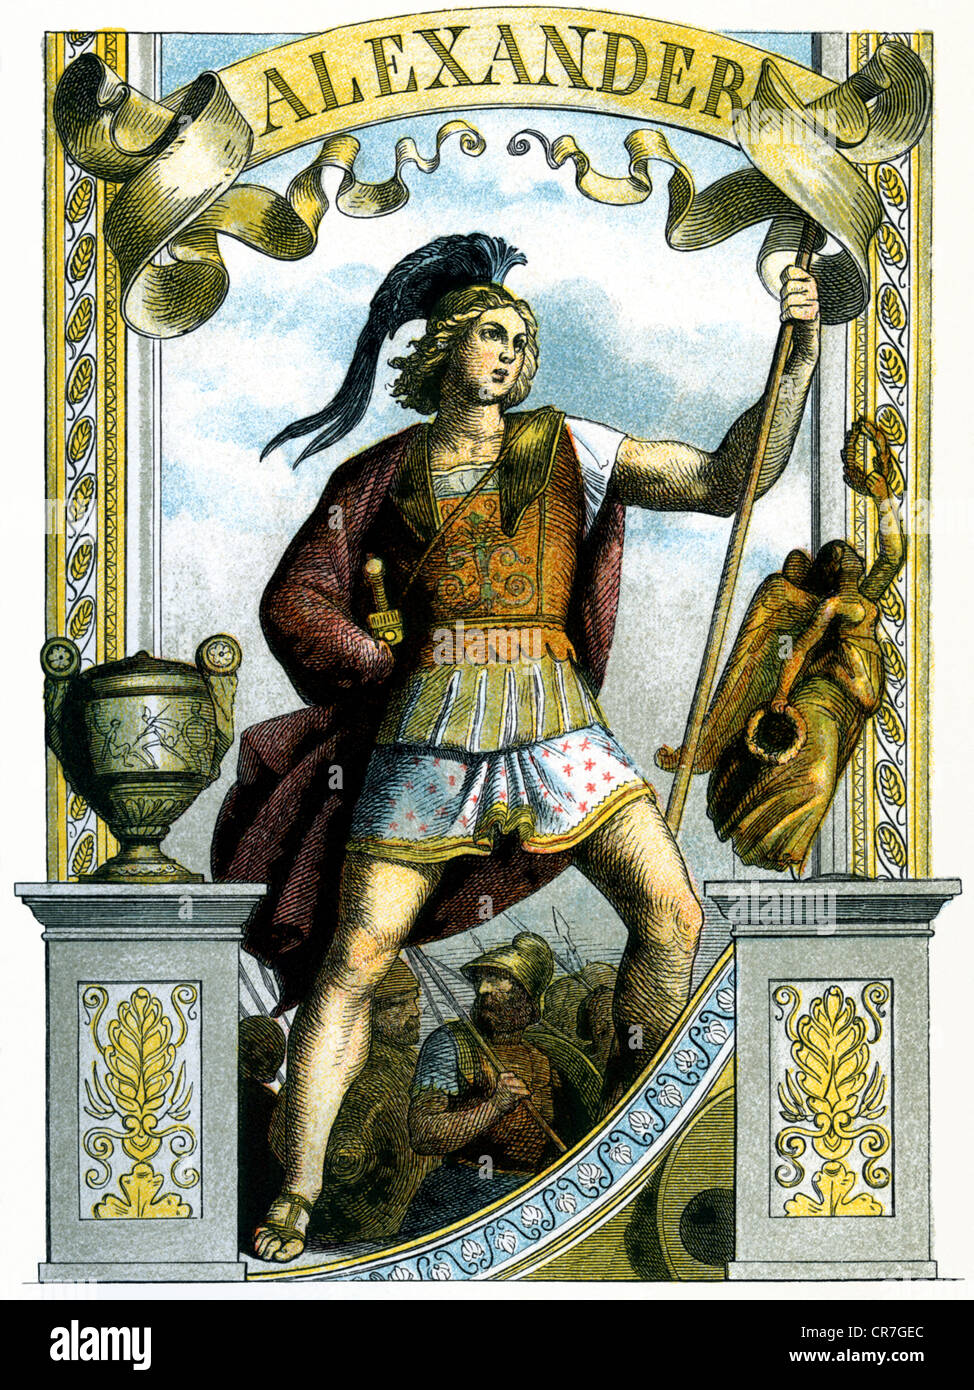 Alexander the great king of macedonia 356 bc 136323 bc full alexander the great king of macedonia 356 bc 136323 bc full length illustration from great men in word and illustra kristyandbryce Choice Image